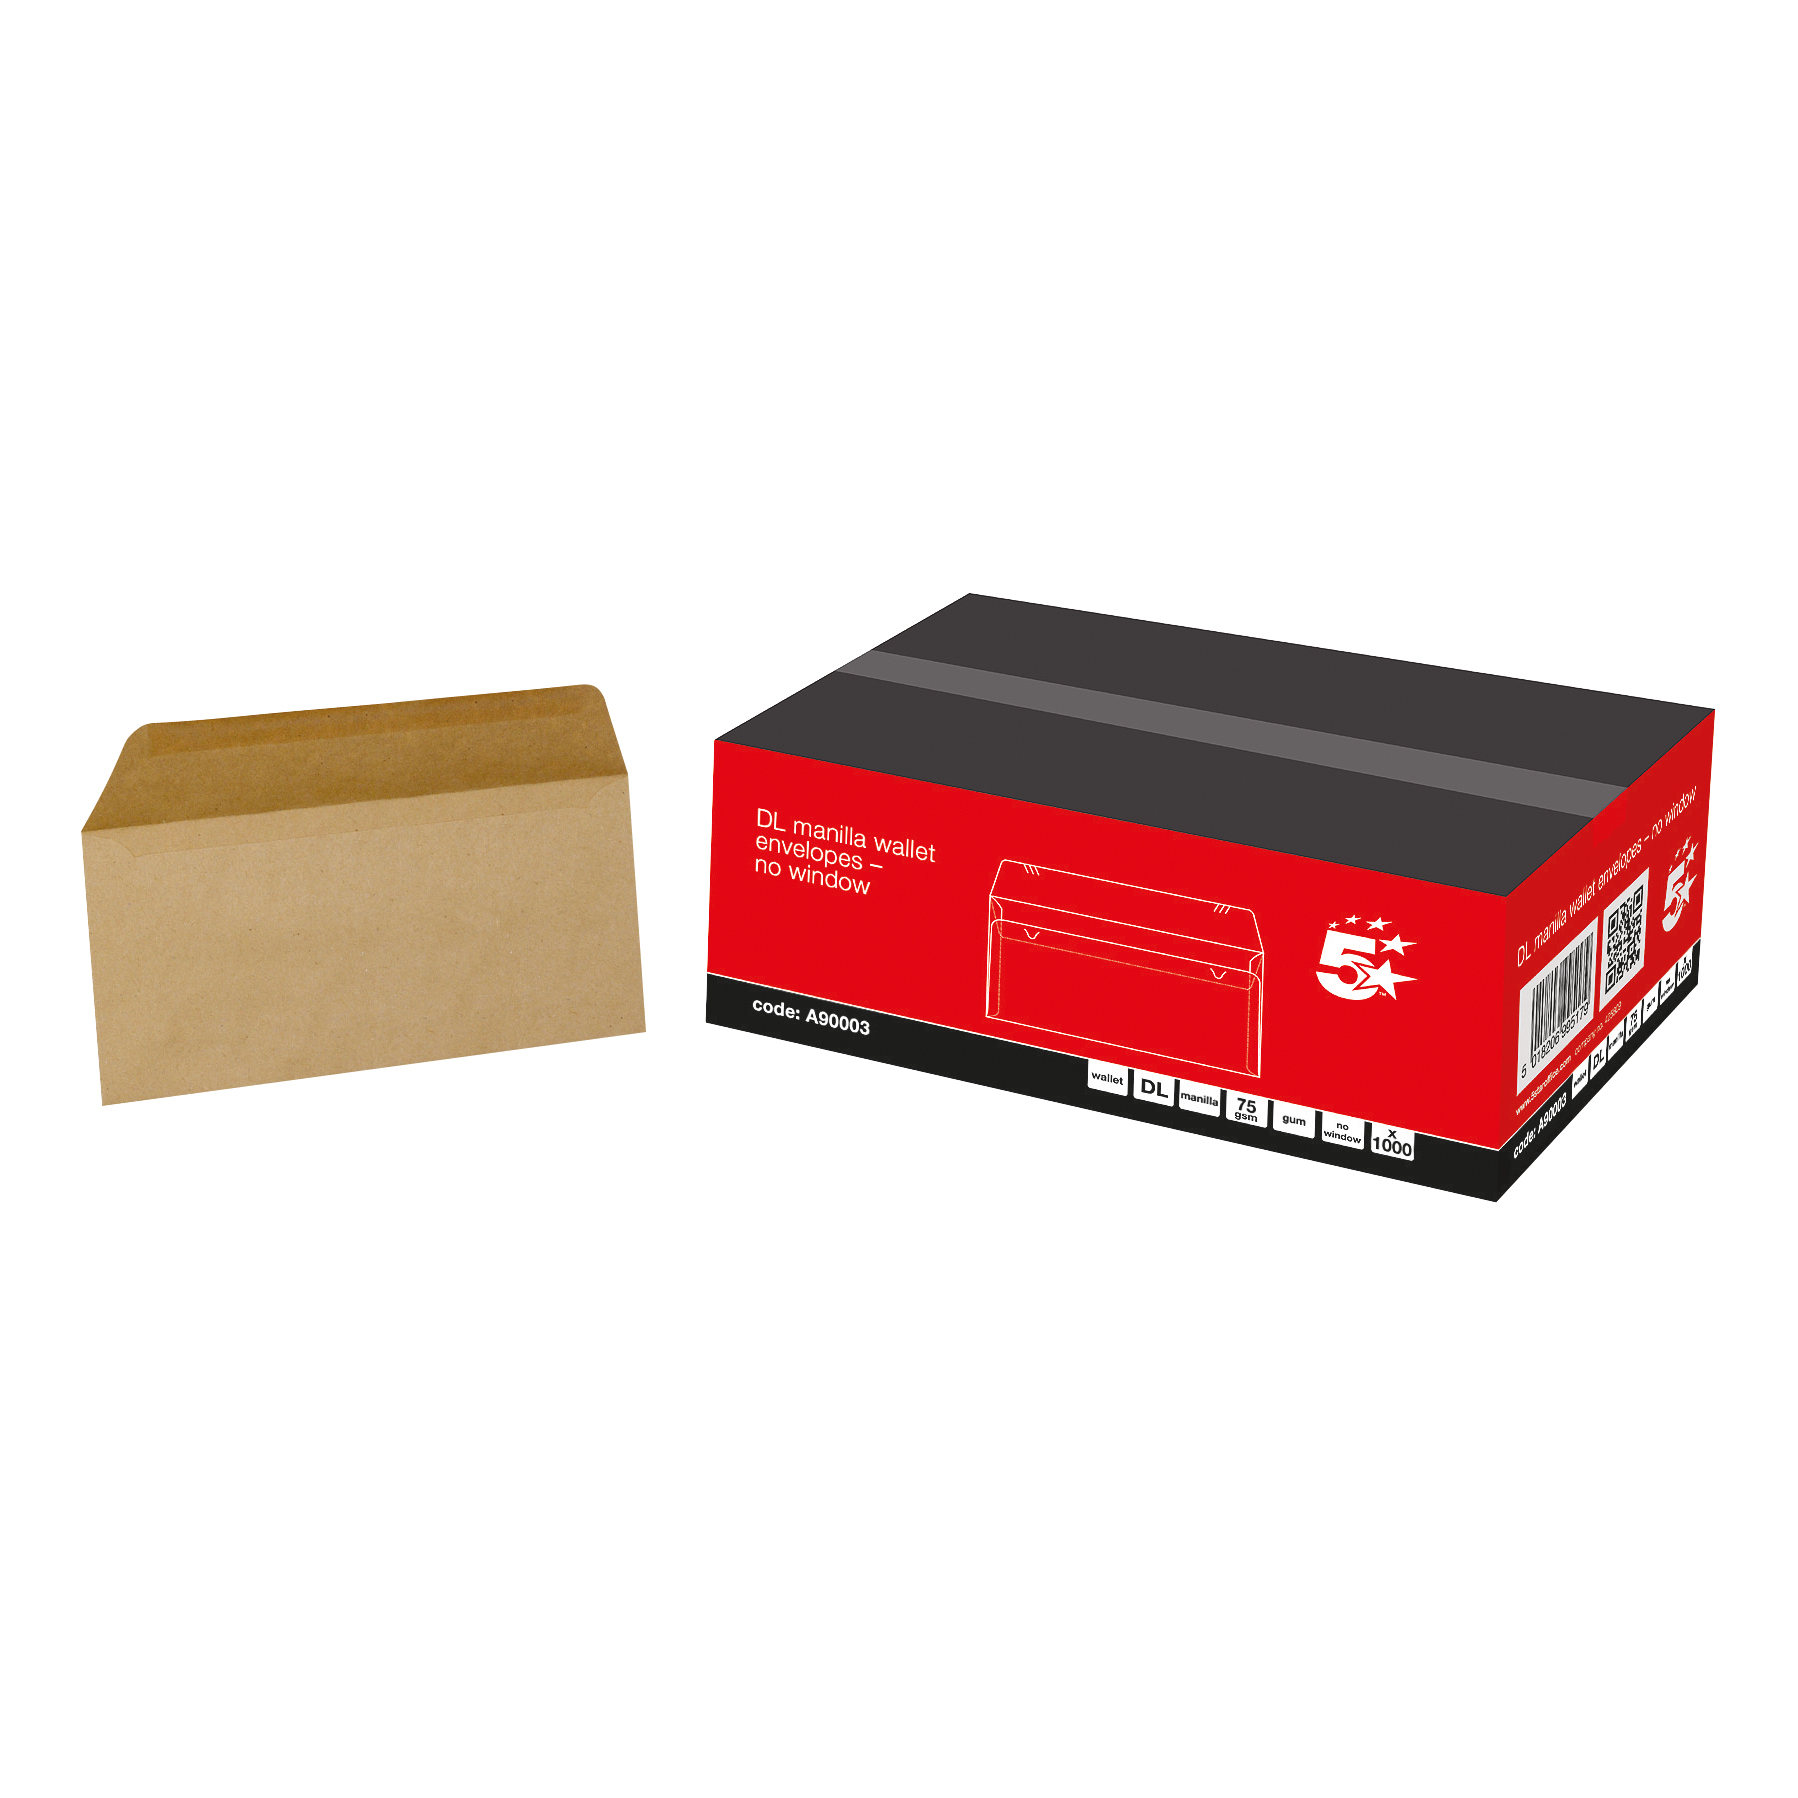 5 Star Office Envelopes FSC Wallet Recycled Lightweight Gummed 75gsm DL 220x110mm Manilla Pack 1000